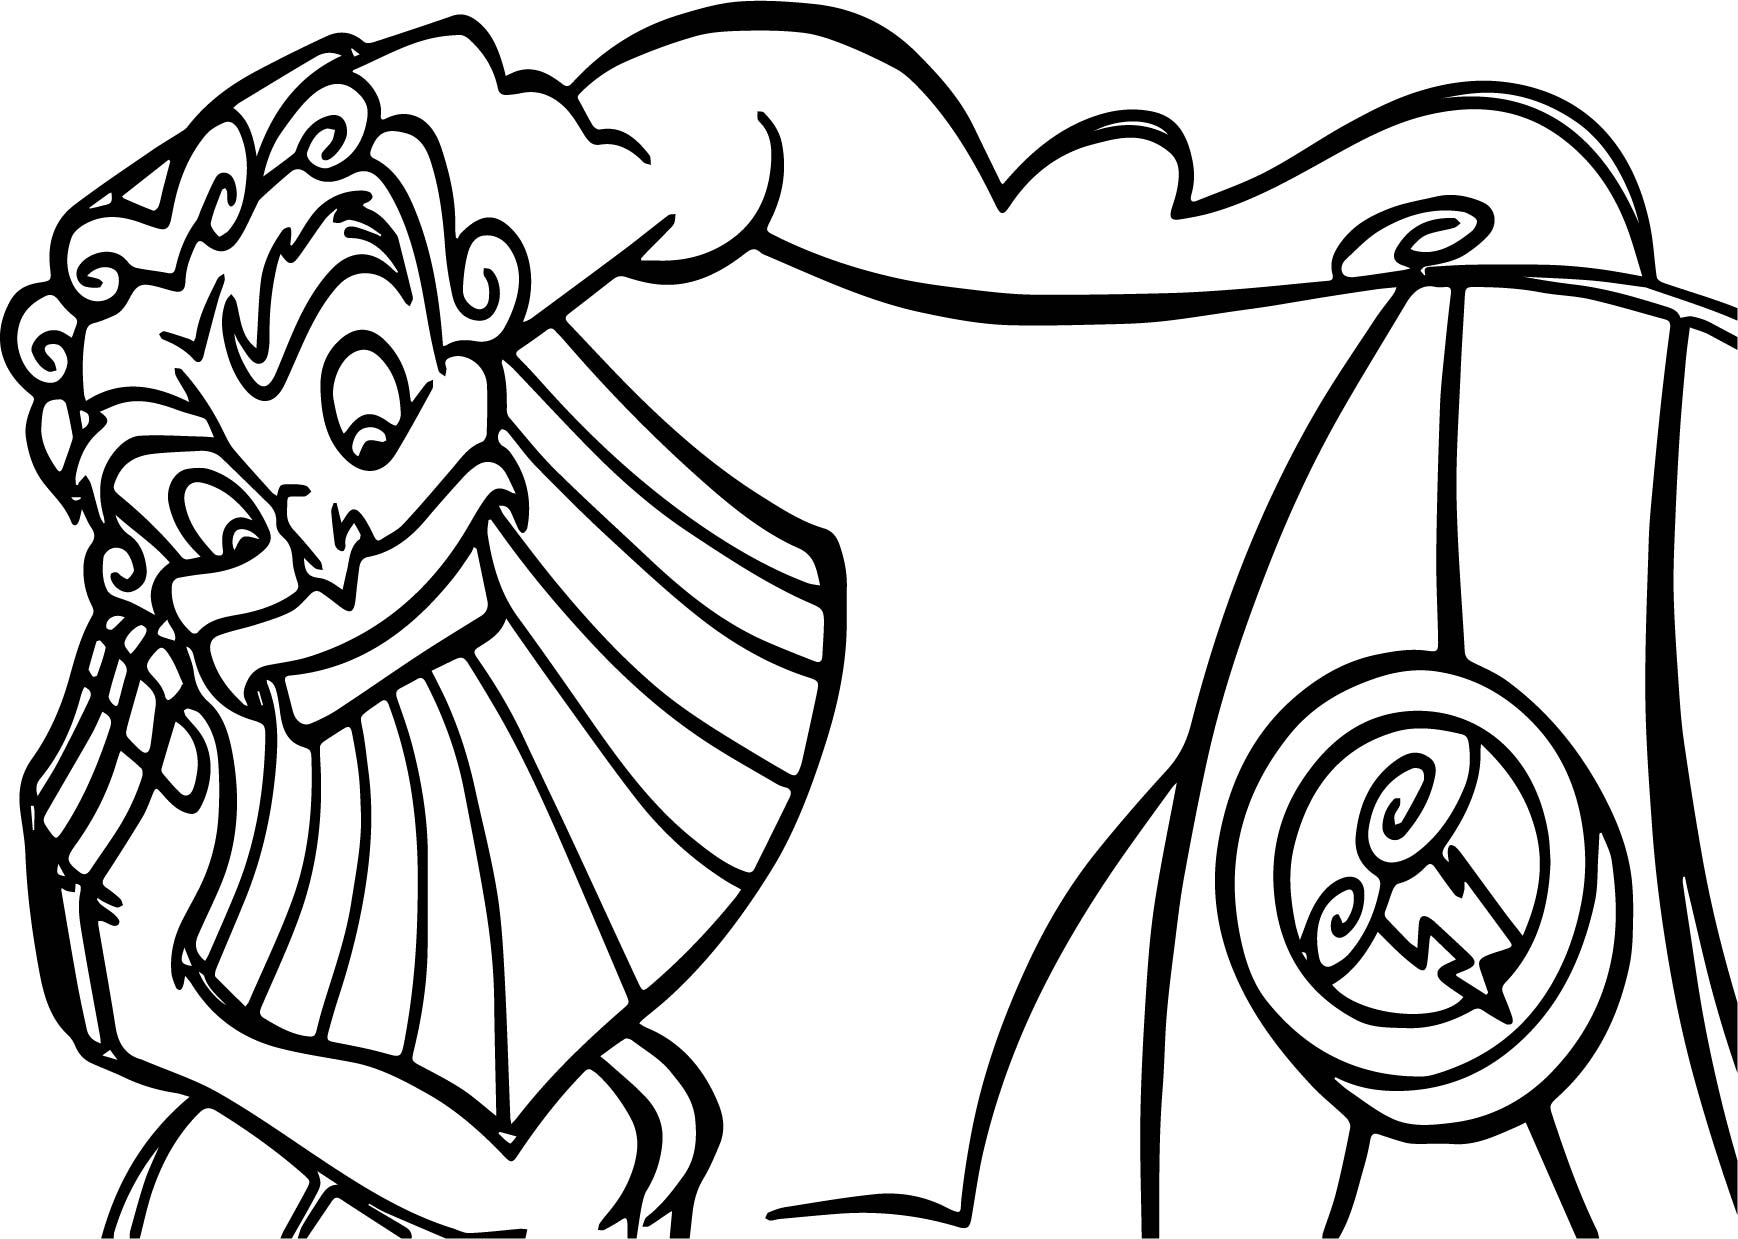 Zeus Hercules Looking Coloring Pages Wecoloringpage